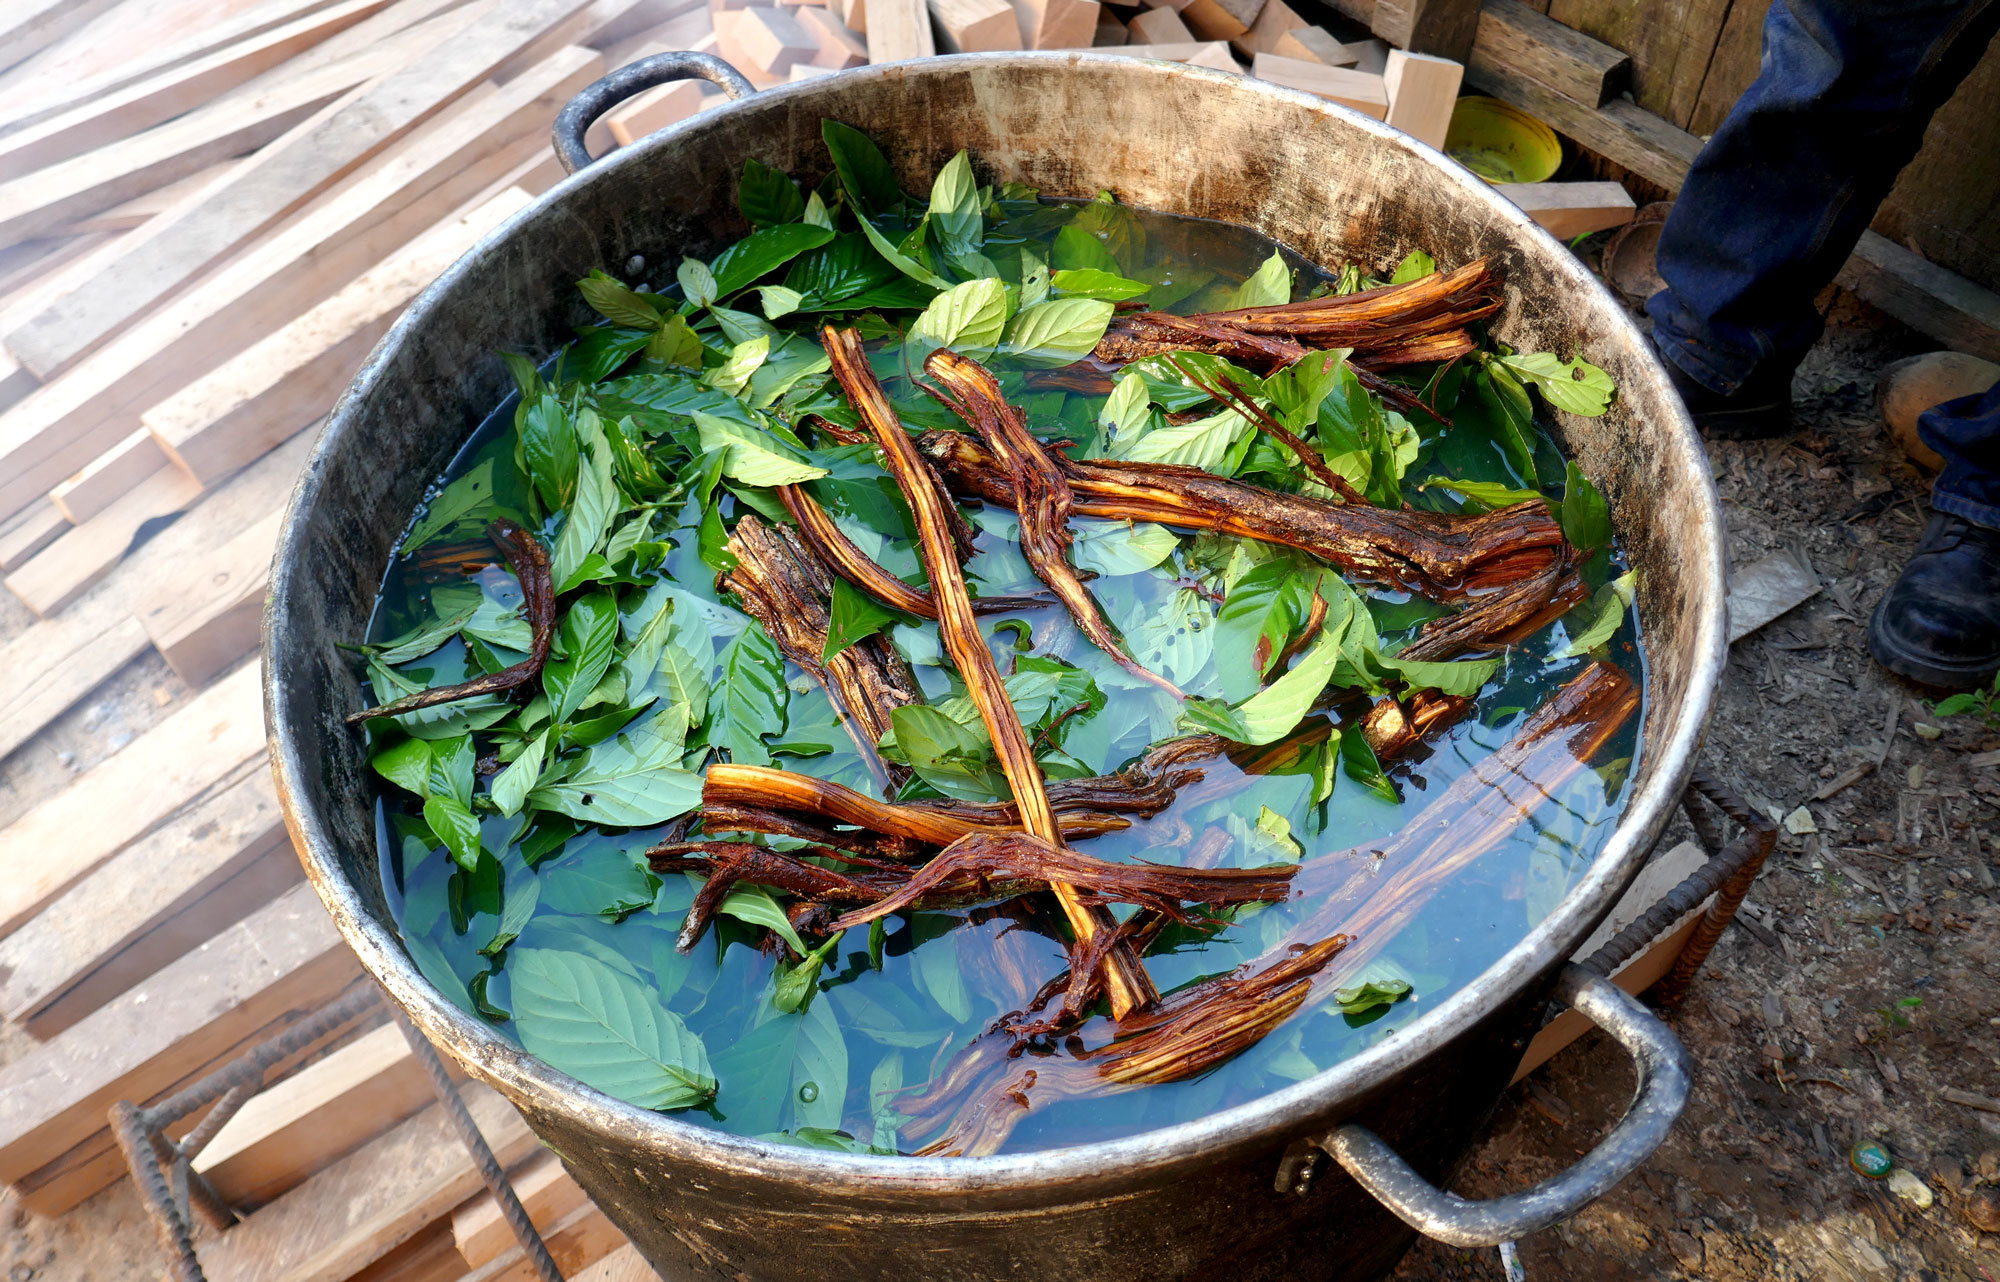 The Shipibo tribe figured out hundreds of years ago that when the ayahuasca leaf is boiled down with the vine, it creates a potent psychedelic brew. (Mark Kelley/CBC)